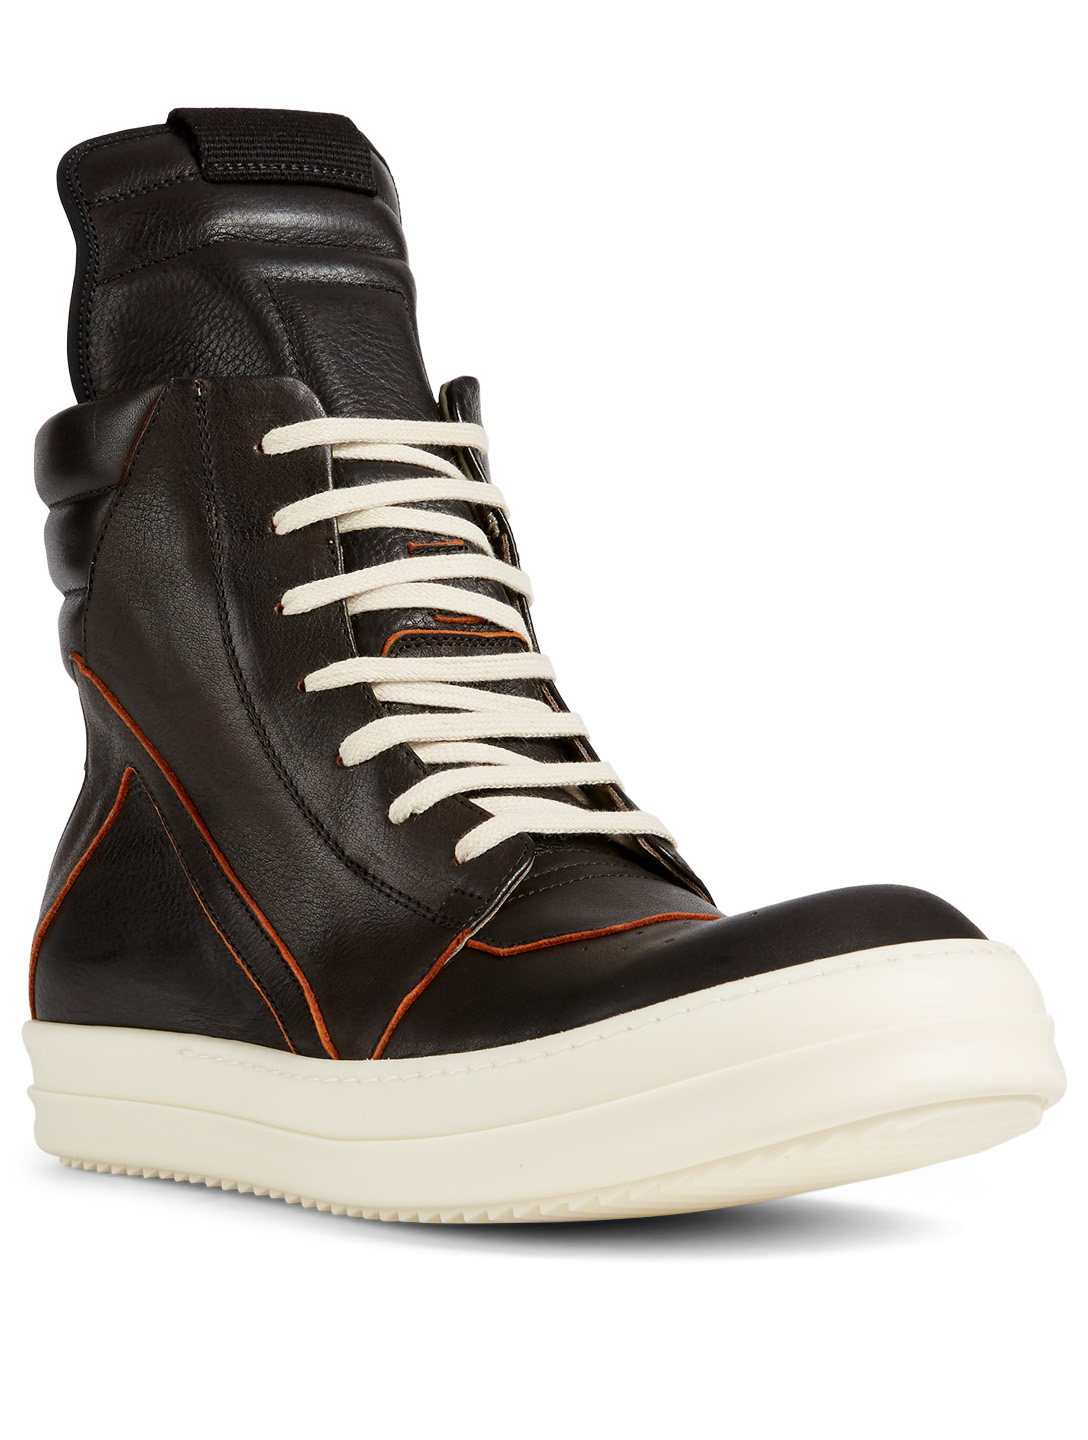 RICK OWENS Geobasket Leather High-Top Sneakers Men's Black